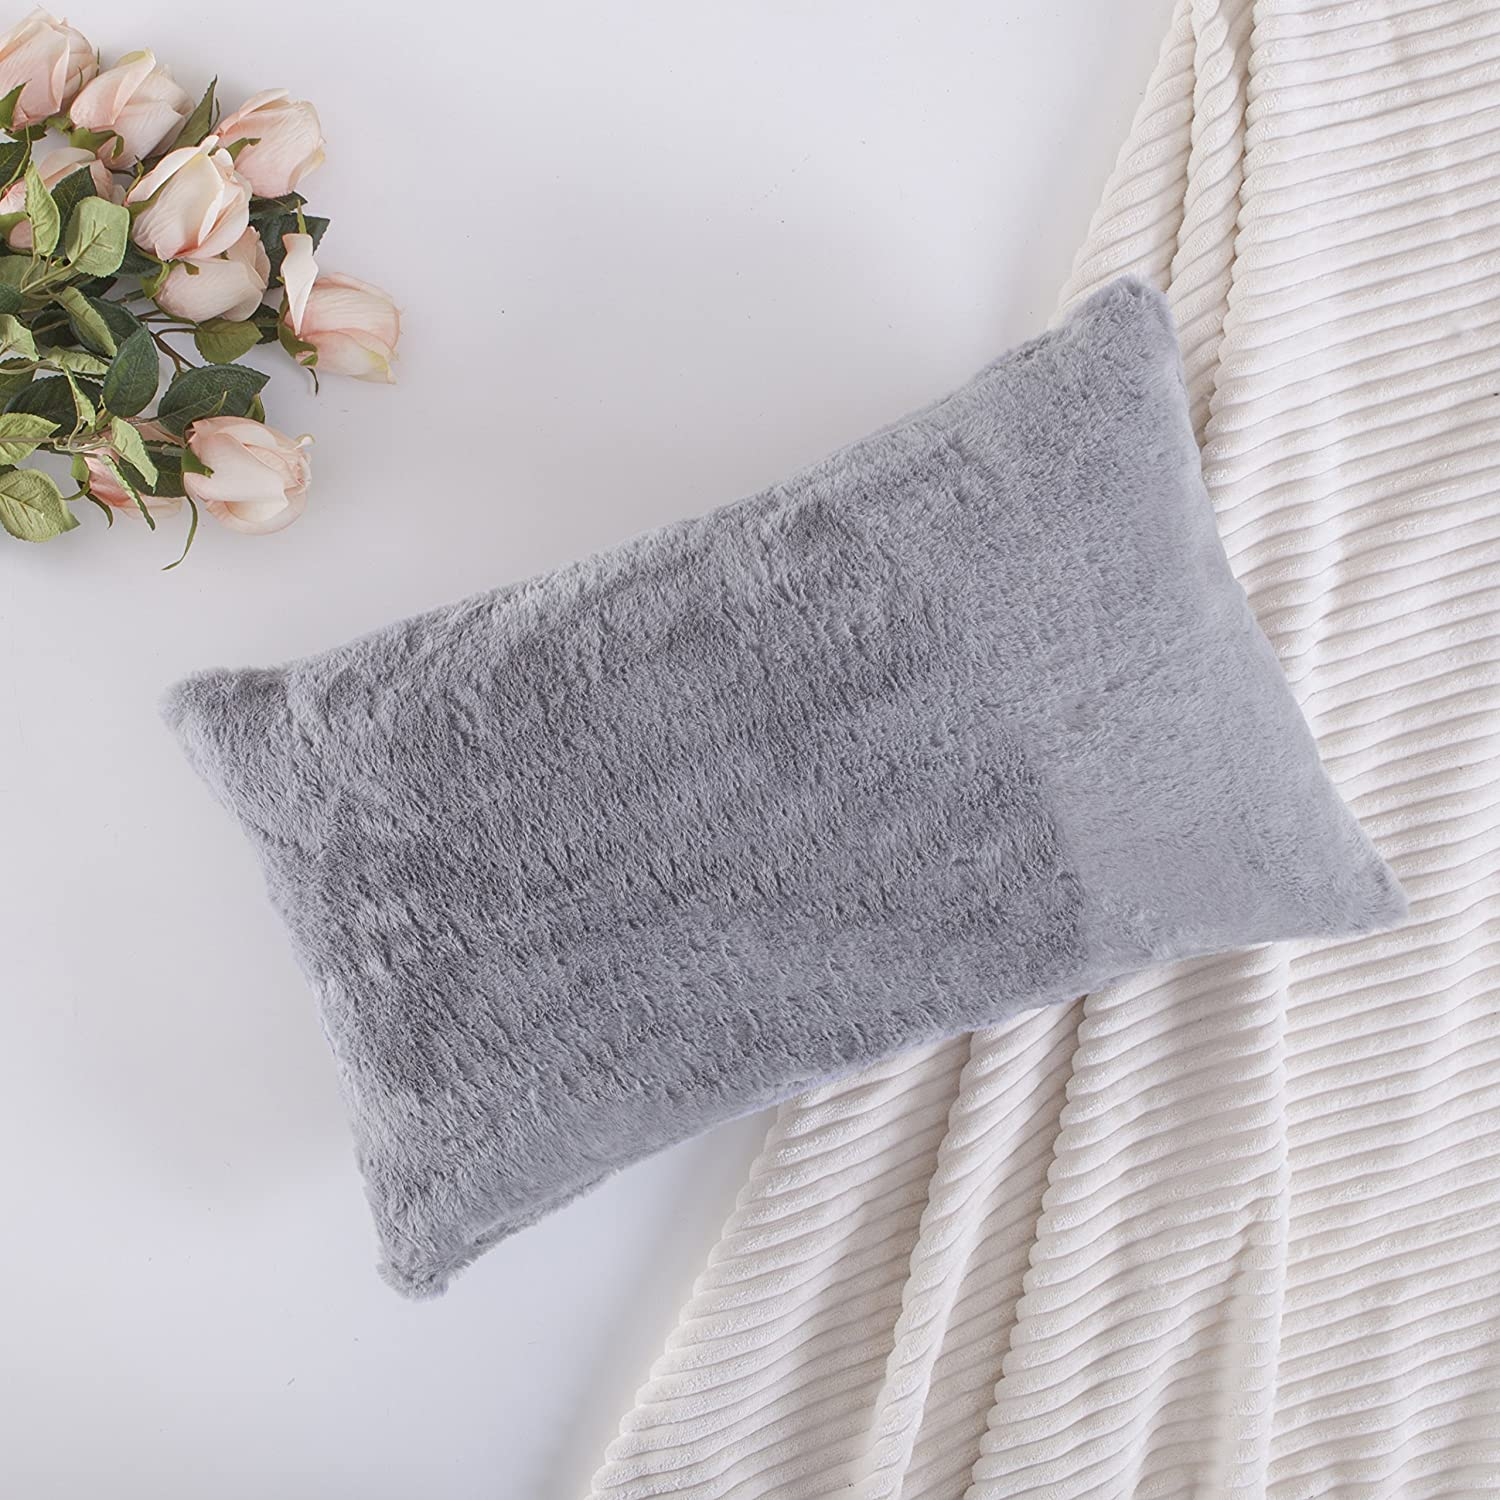 HOME BRILLIANT Plush Mongolian Faux Fur Deluxe Suede Fluffy Sheepskin Oblong Rectangular Accent Throw Pillow Case Cushion Cover for Bed, 1 Pc, 12x20 Inches, Grey